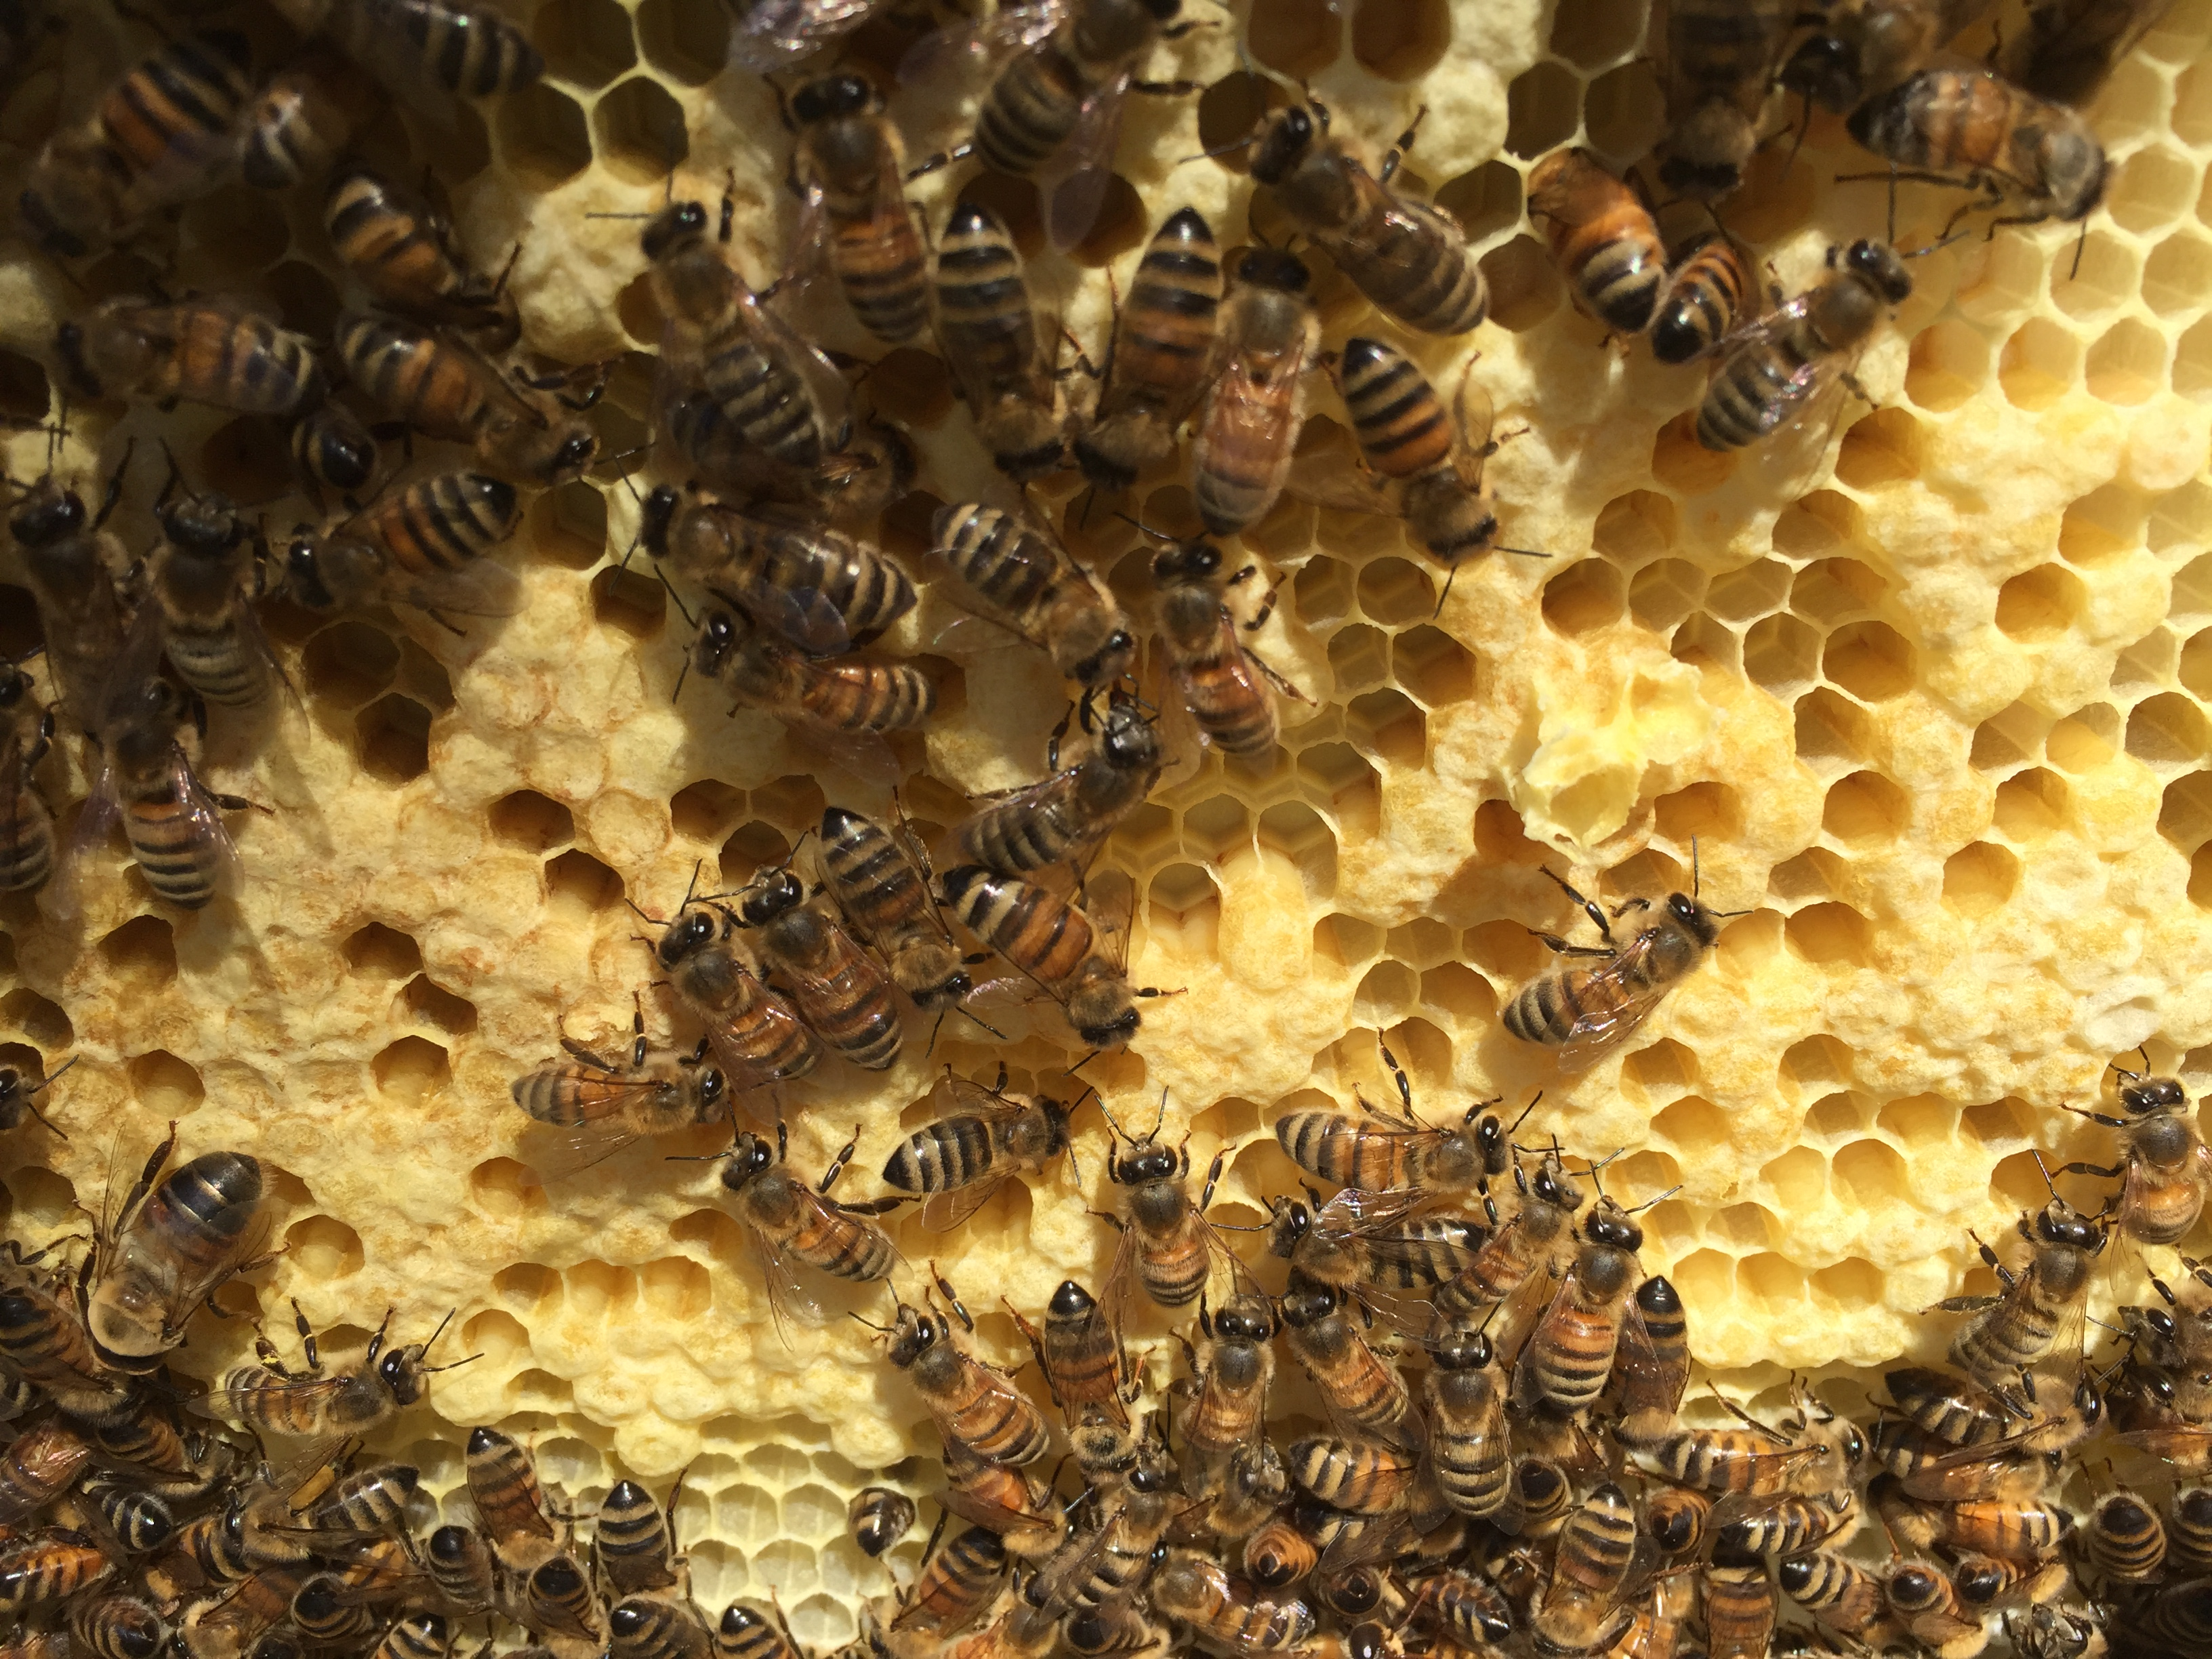 New bees on the way